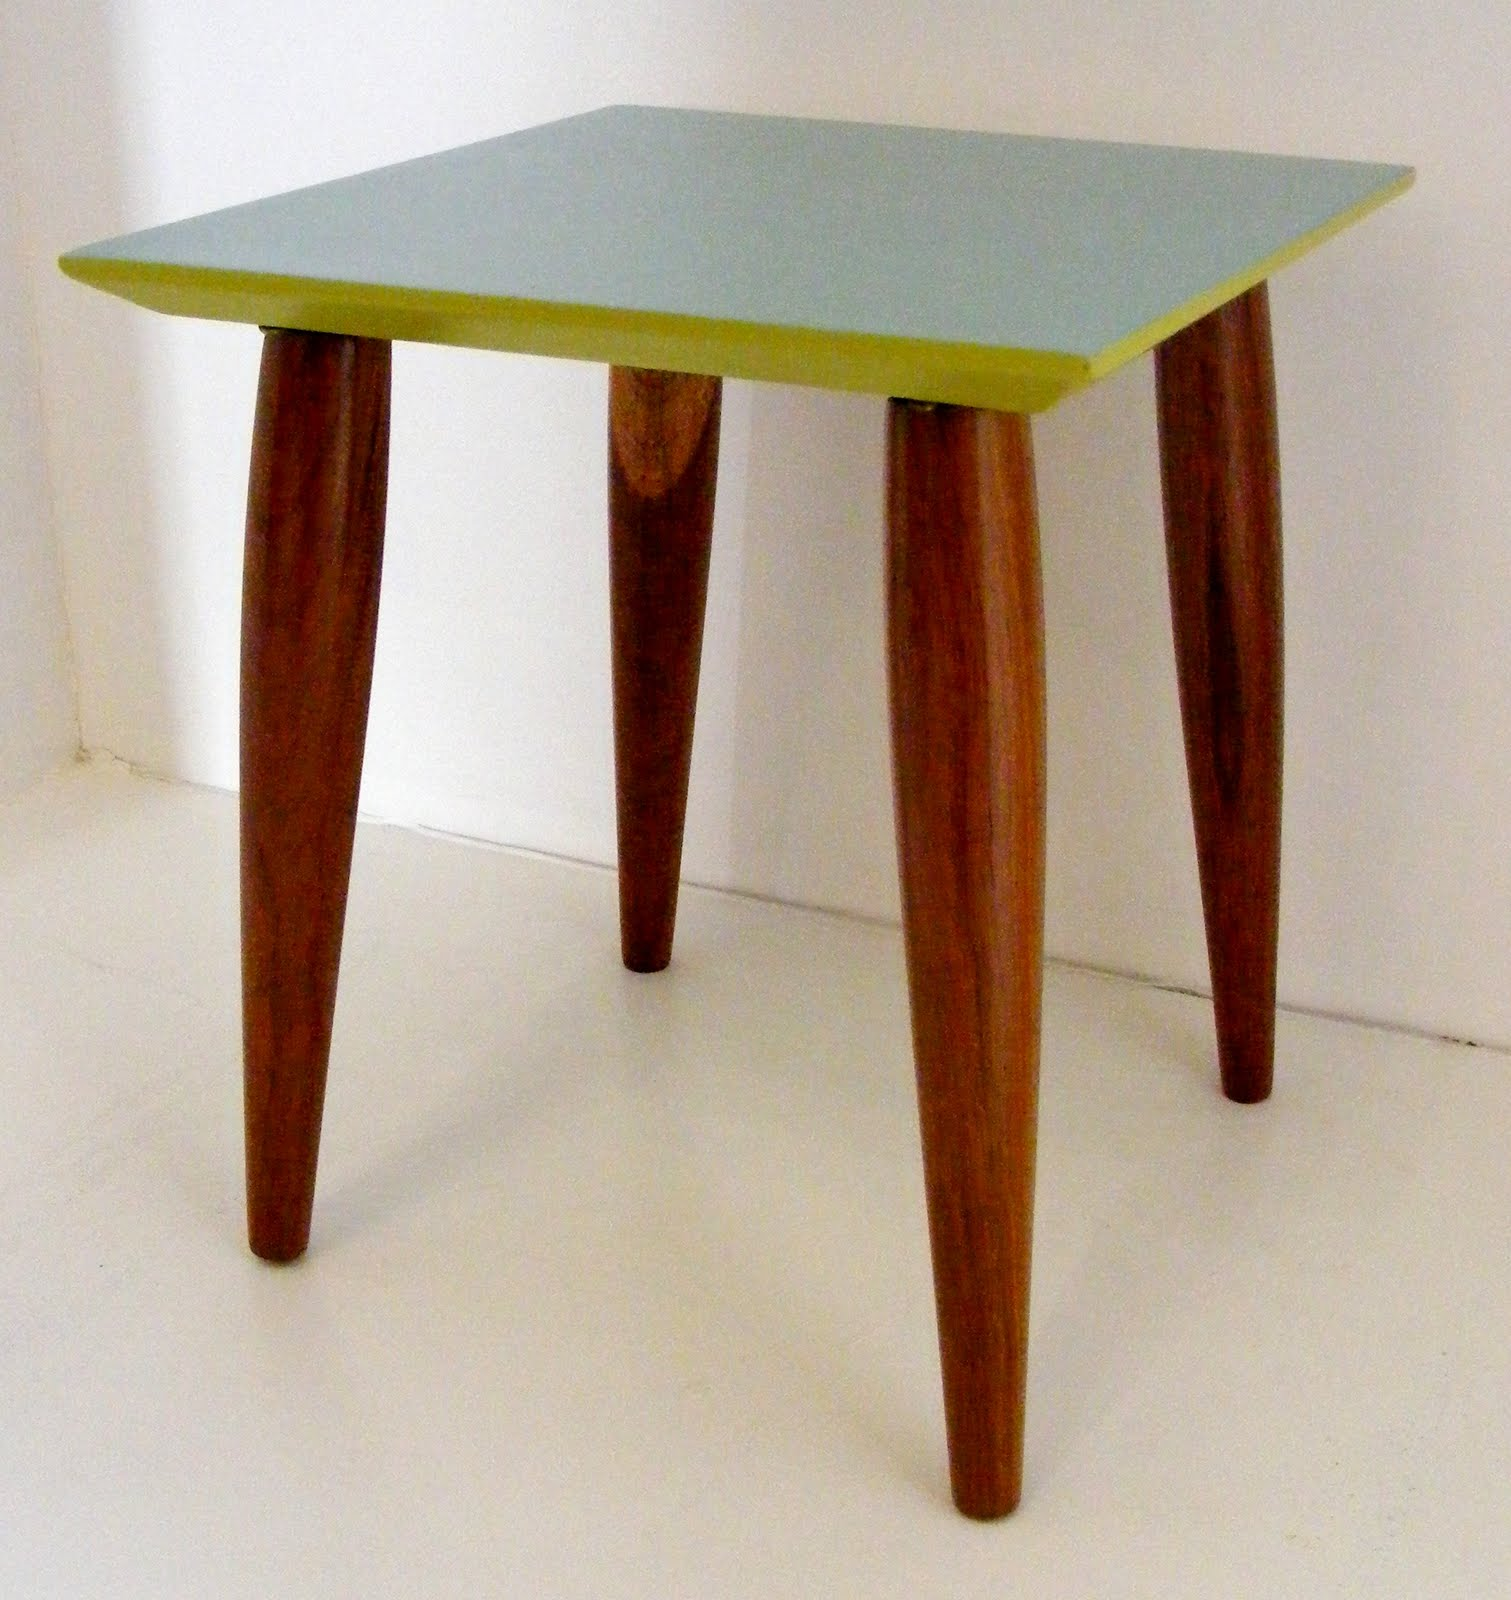 vamp furniture new stock this week lime green accent table small square retro side with aqua and accents drum seat height trestle supports heavy duty throne nautical decor lamps